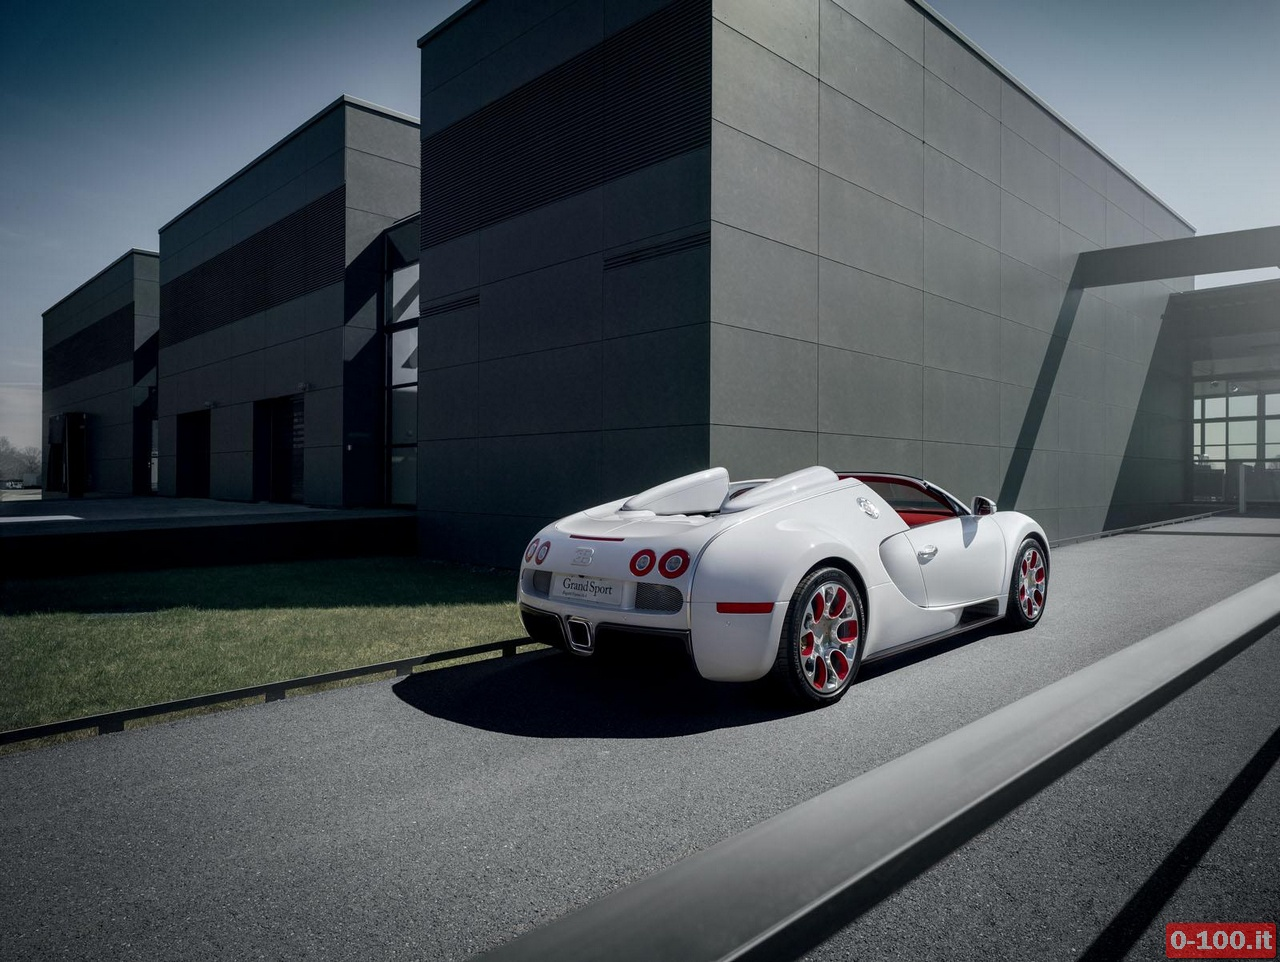 bugatti_veyron_grand_sport_wei-long_2012_0-100_42